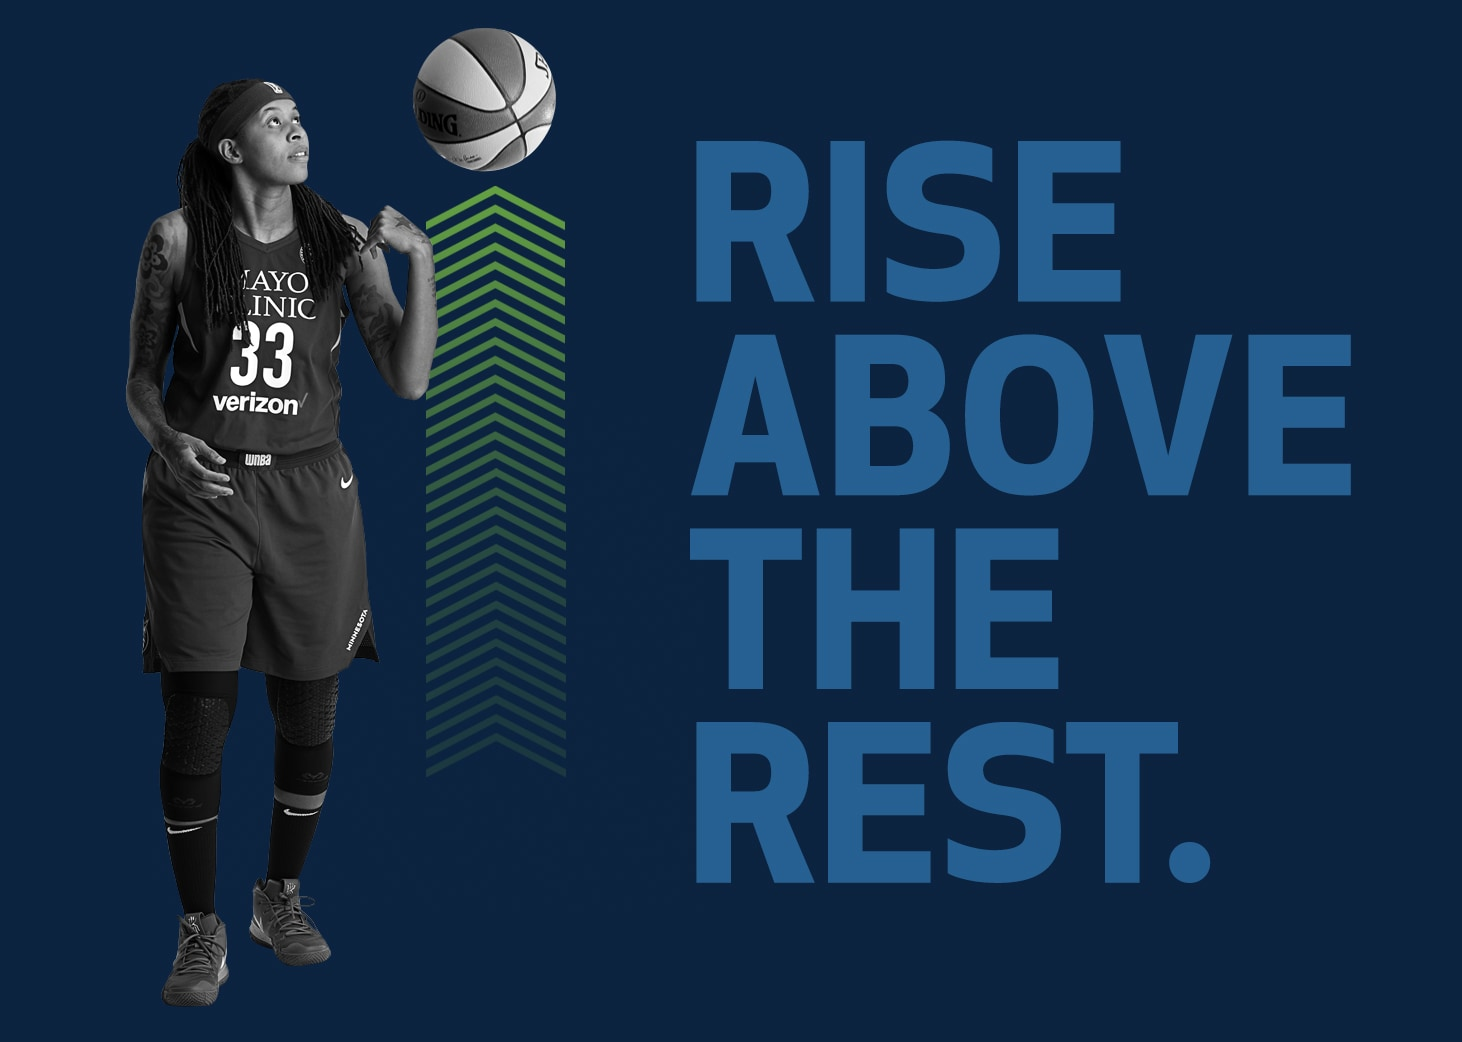 Rise Above The Rest.